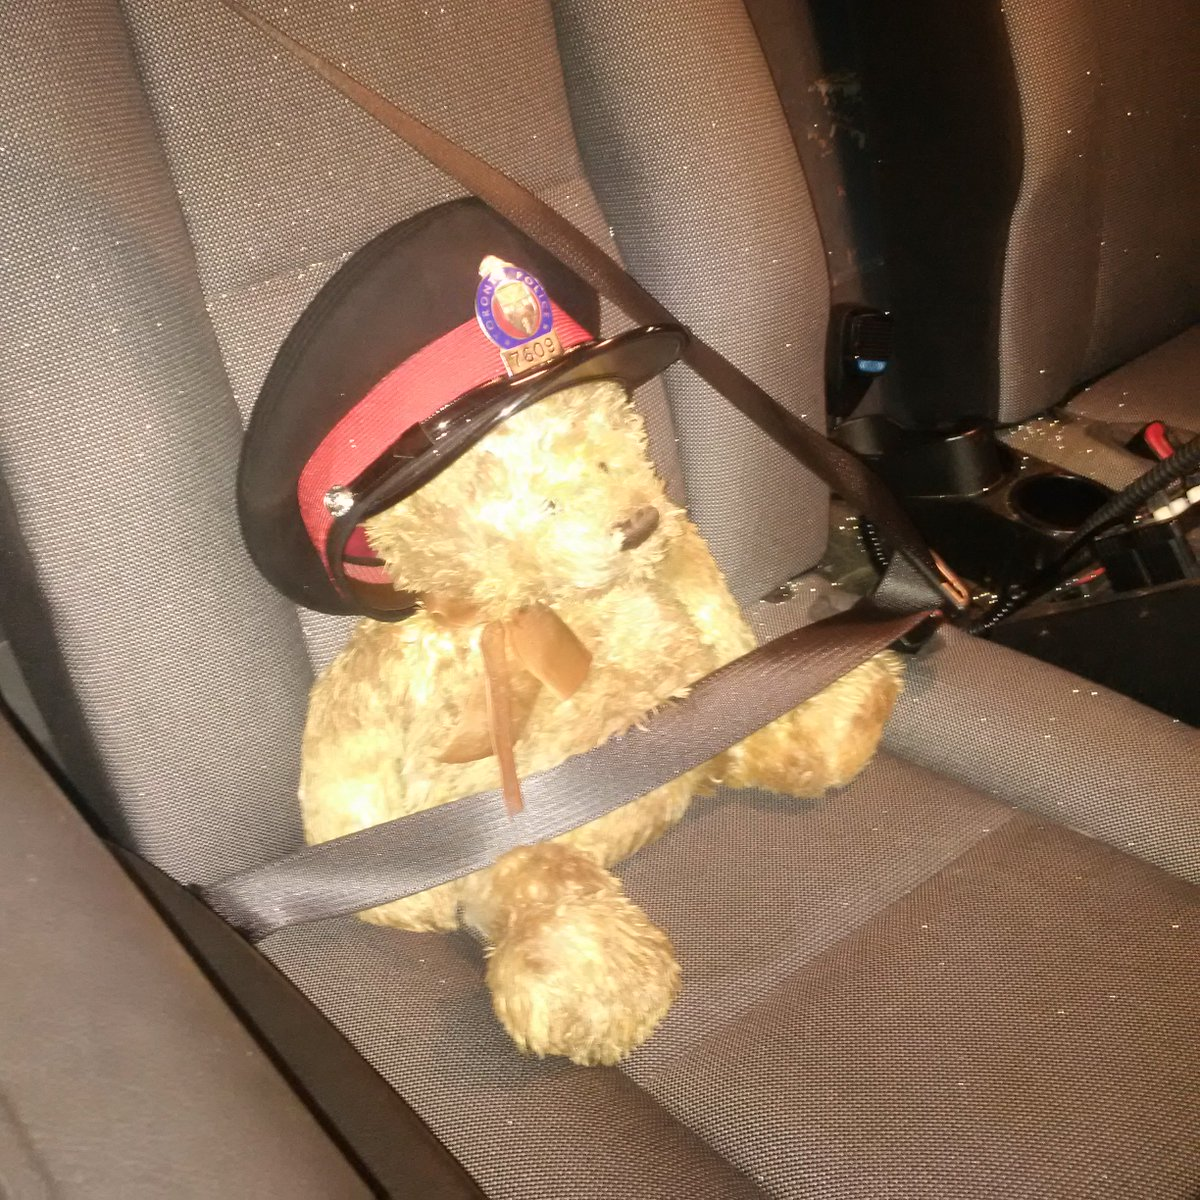 Bear missing human, on way to @BTtoronto with Constable in Training PC Bear @TPSOperations @TorontoPolice https://t.co/w7ChQJRe0J